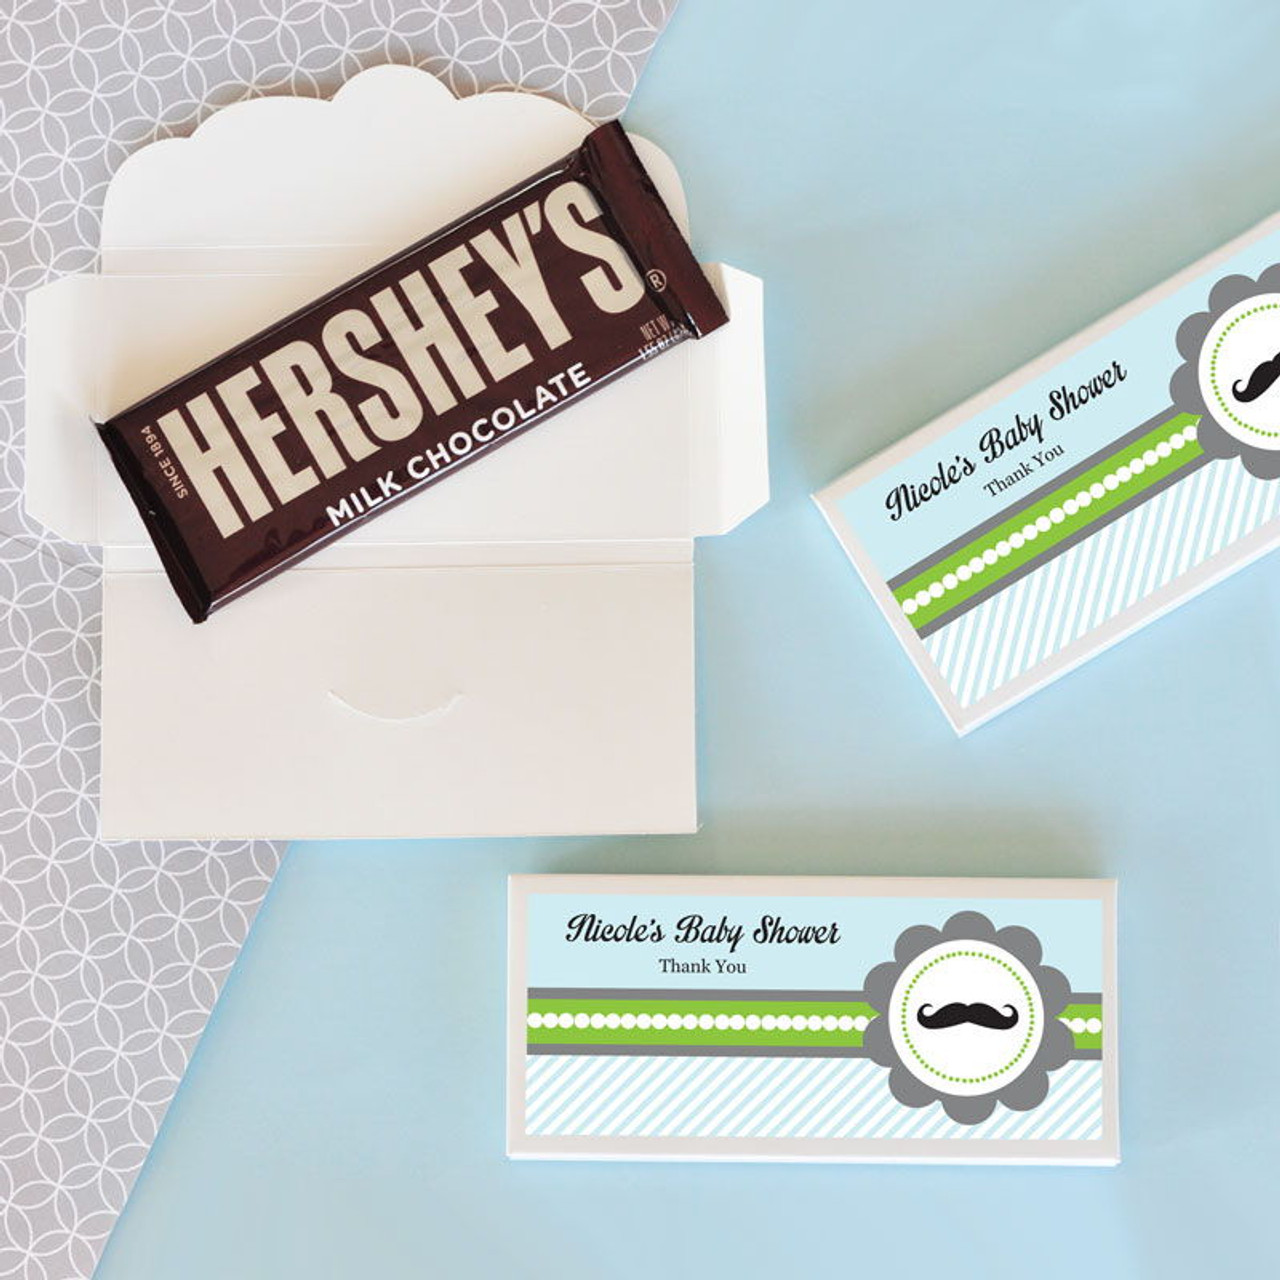 candy bar labels New York City Event 20 Hershey Chocolate Bar Wrappers wedding favor NYC birthday party 4 design options